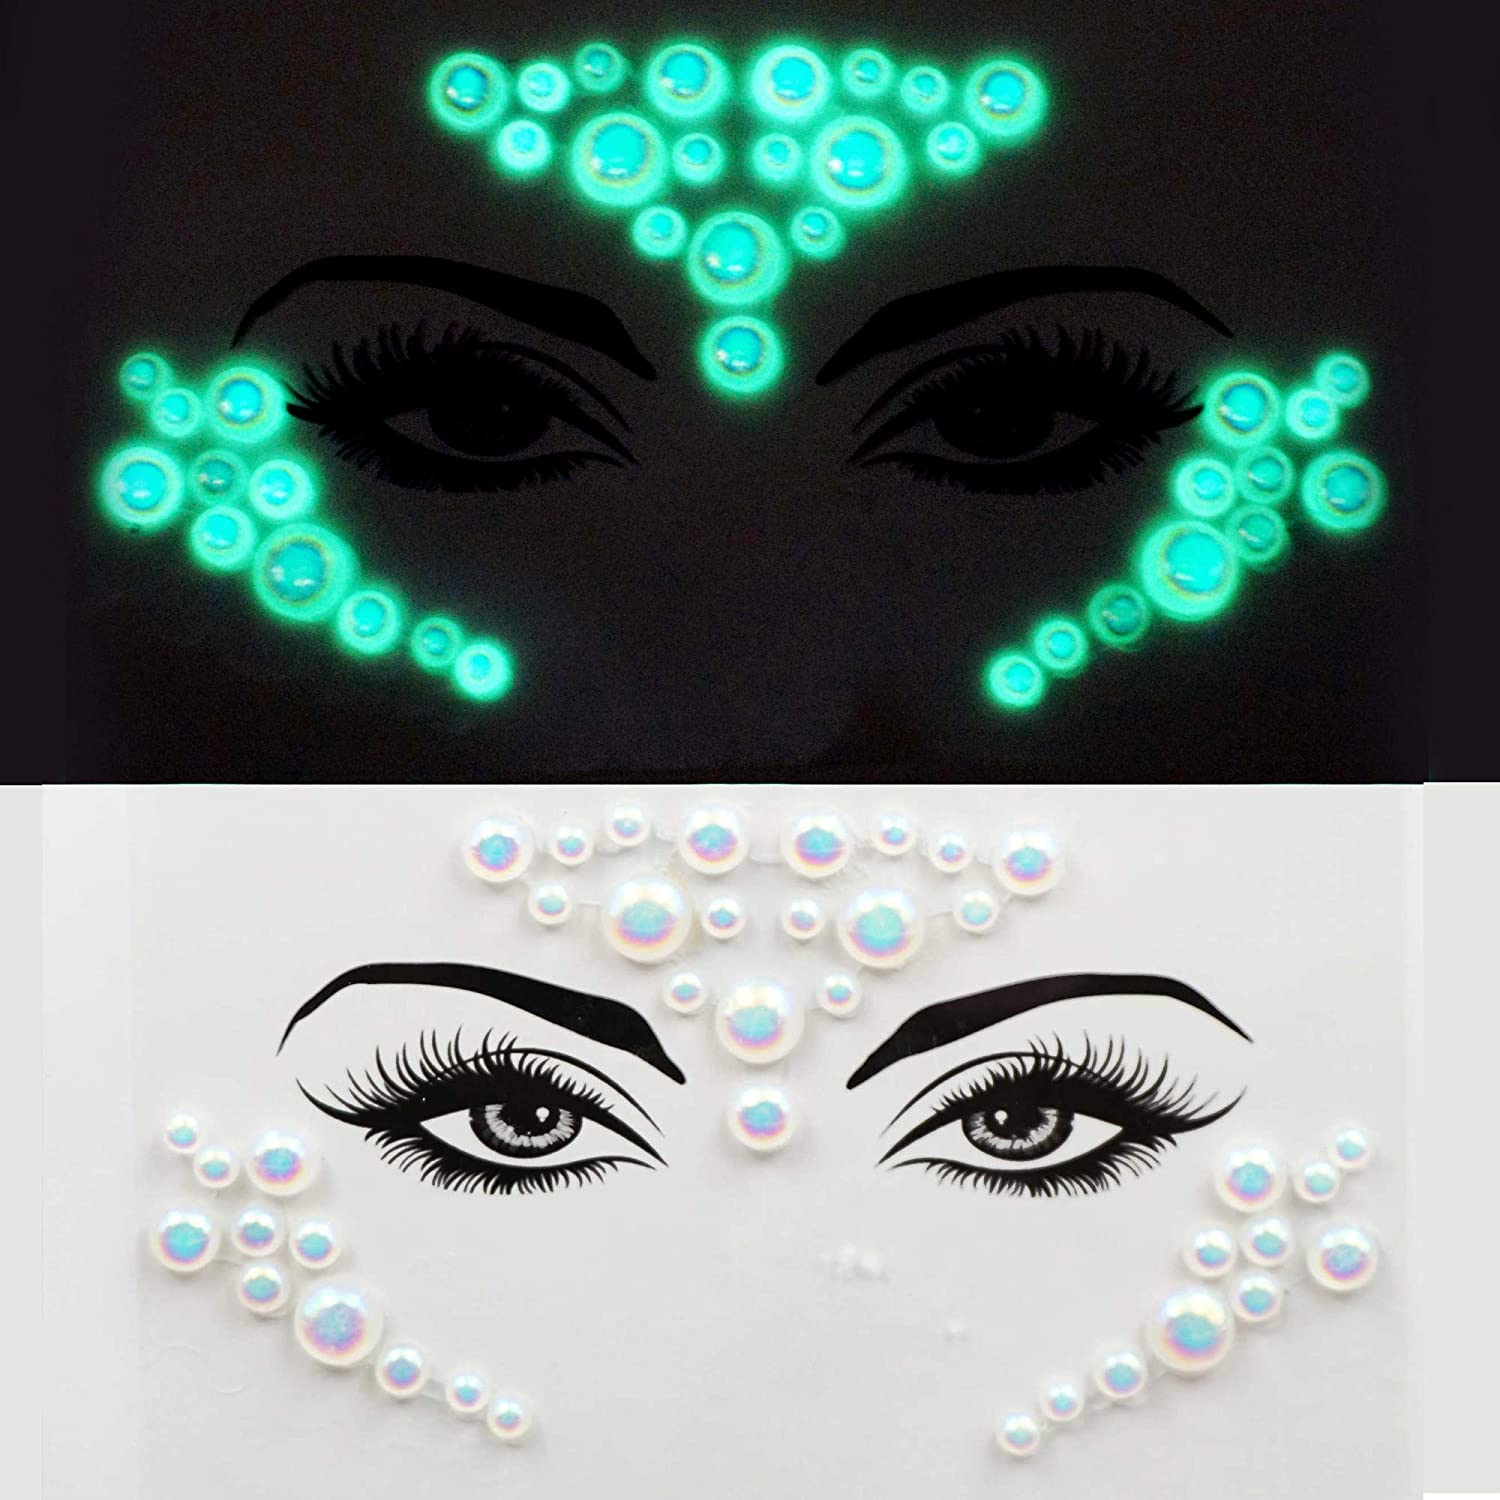 halloween crystal temporary tattoo face gems rhinestone pastie fluorescent body rhinestone jewels for party pride make up beauty wedding (tp320 triangle)